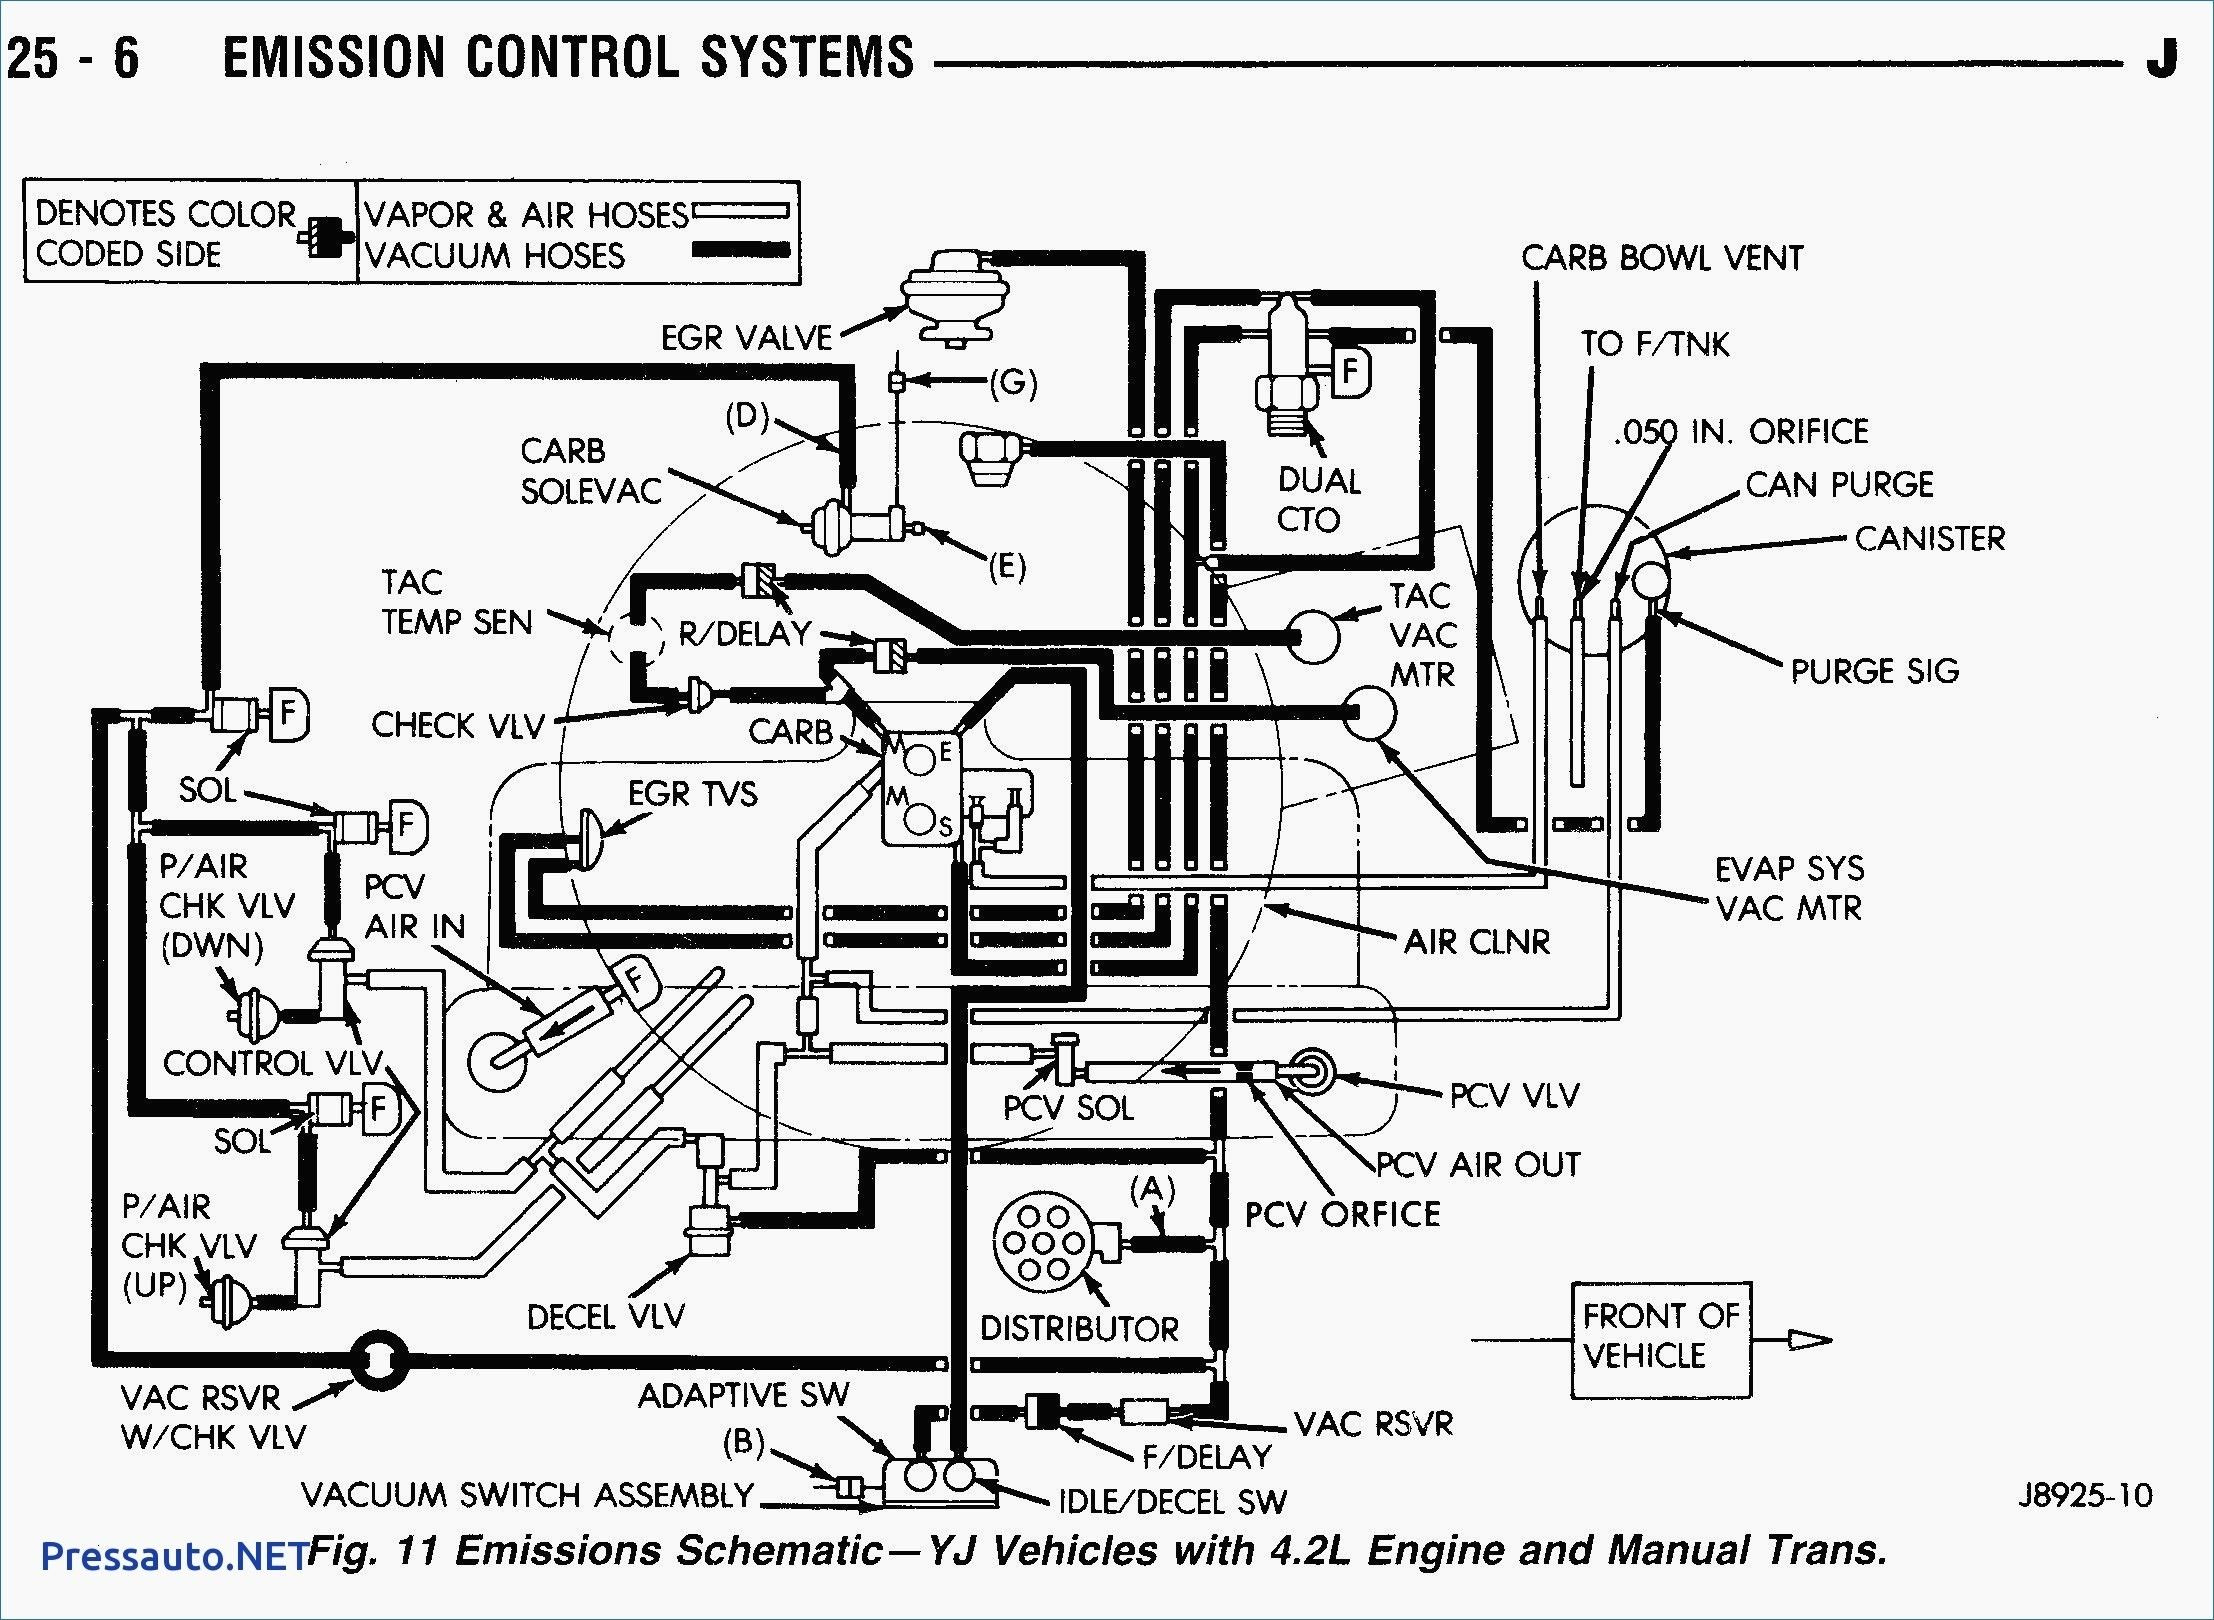 hight resolution of wiring diagrams jeep 1988 wrangler 1988 wrangler 4 2l engine blogjeep 4 2 engine vacuum diagram